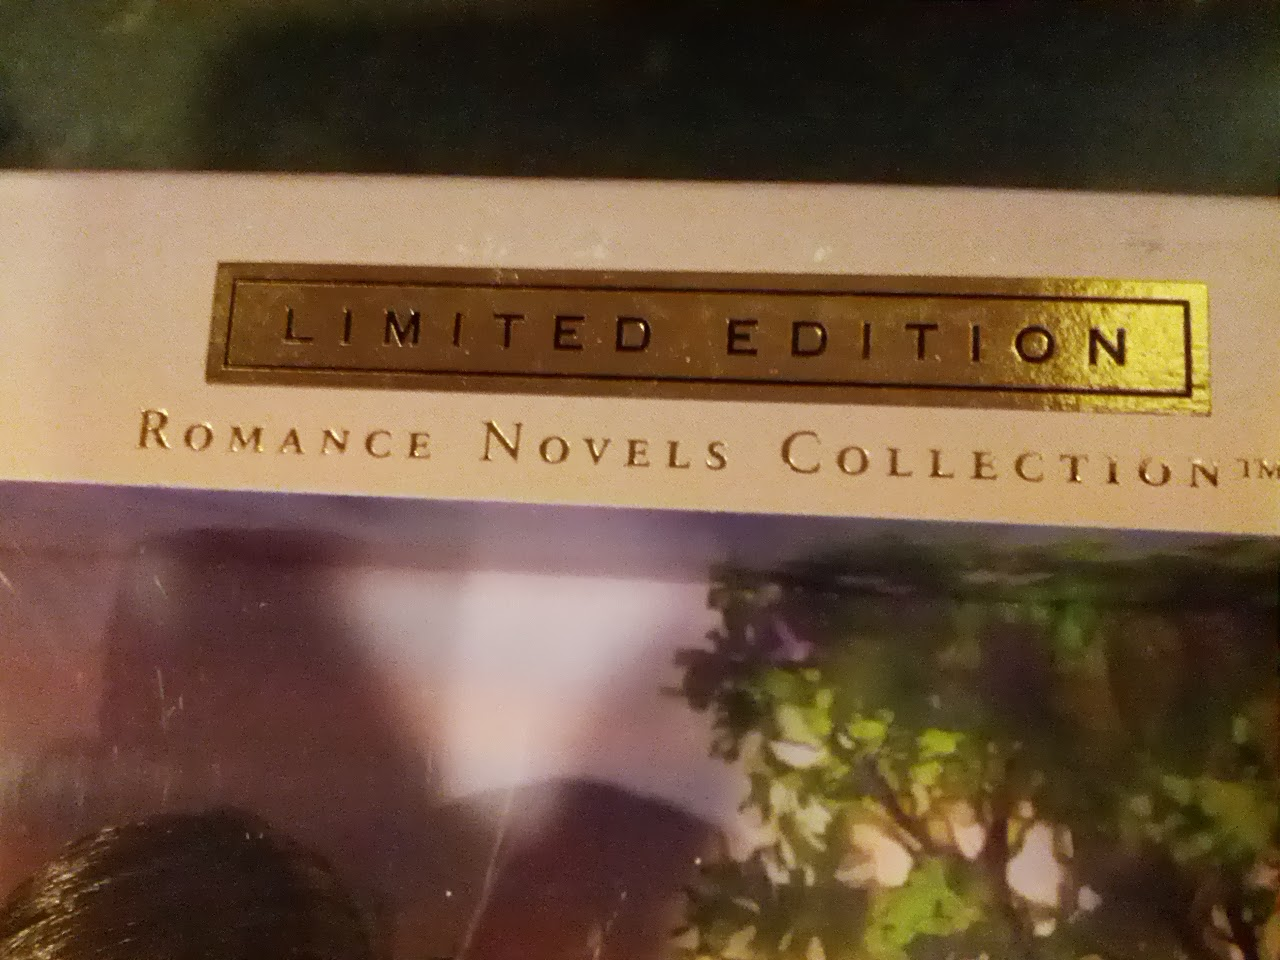 Barbie Limited Edition Romance Novels Collection on the top of the box